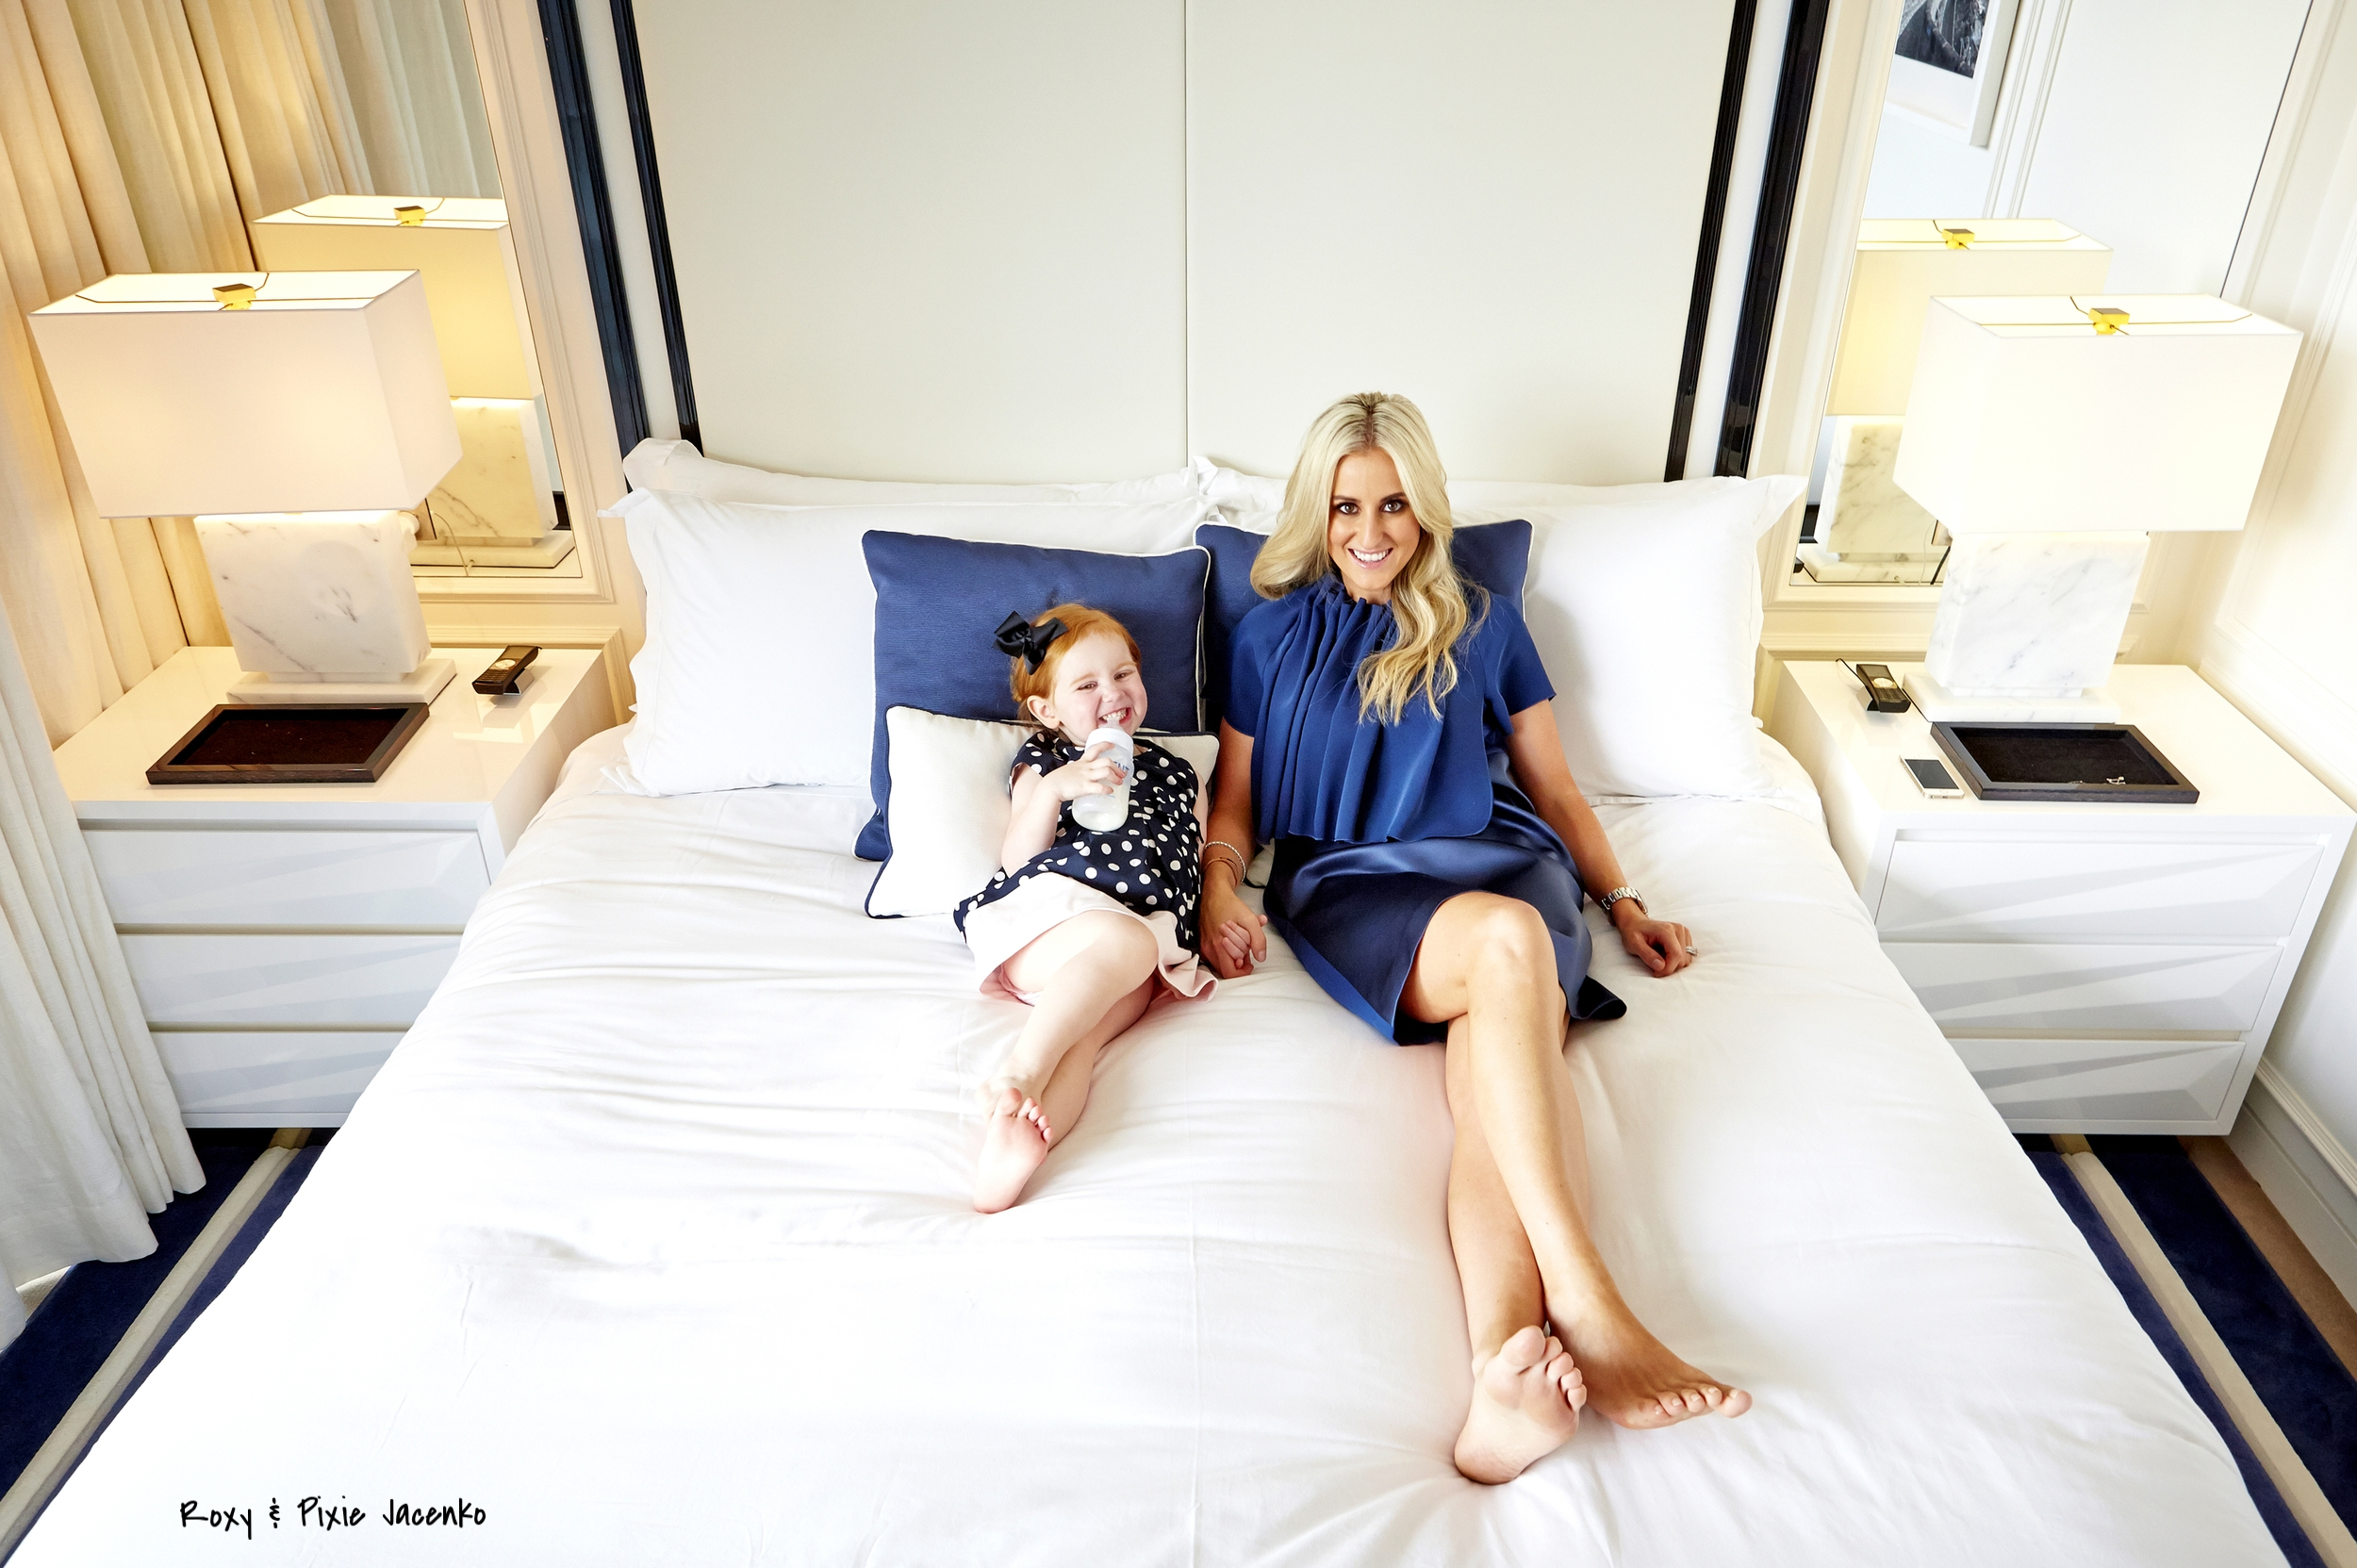 New Idea_Roxy Jacenko138161136.jpg